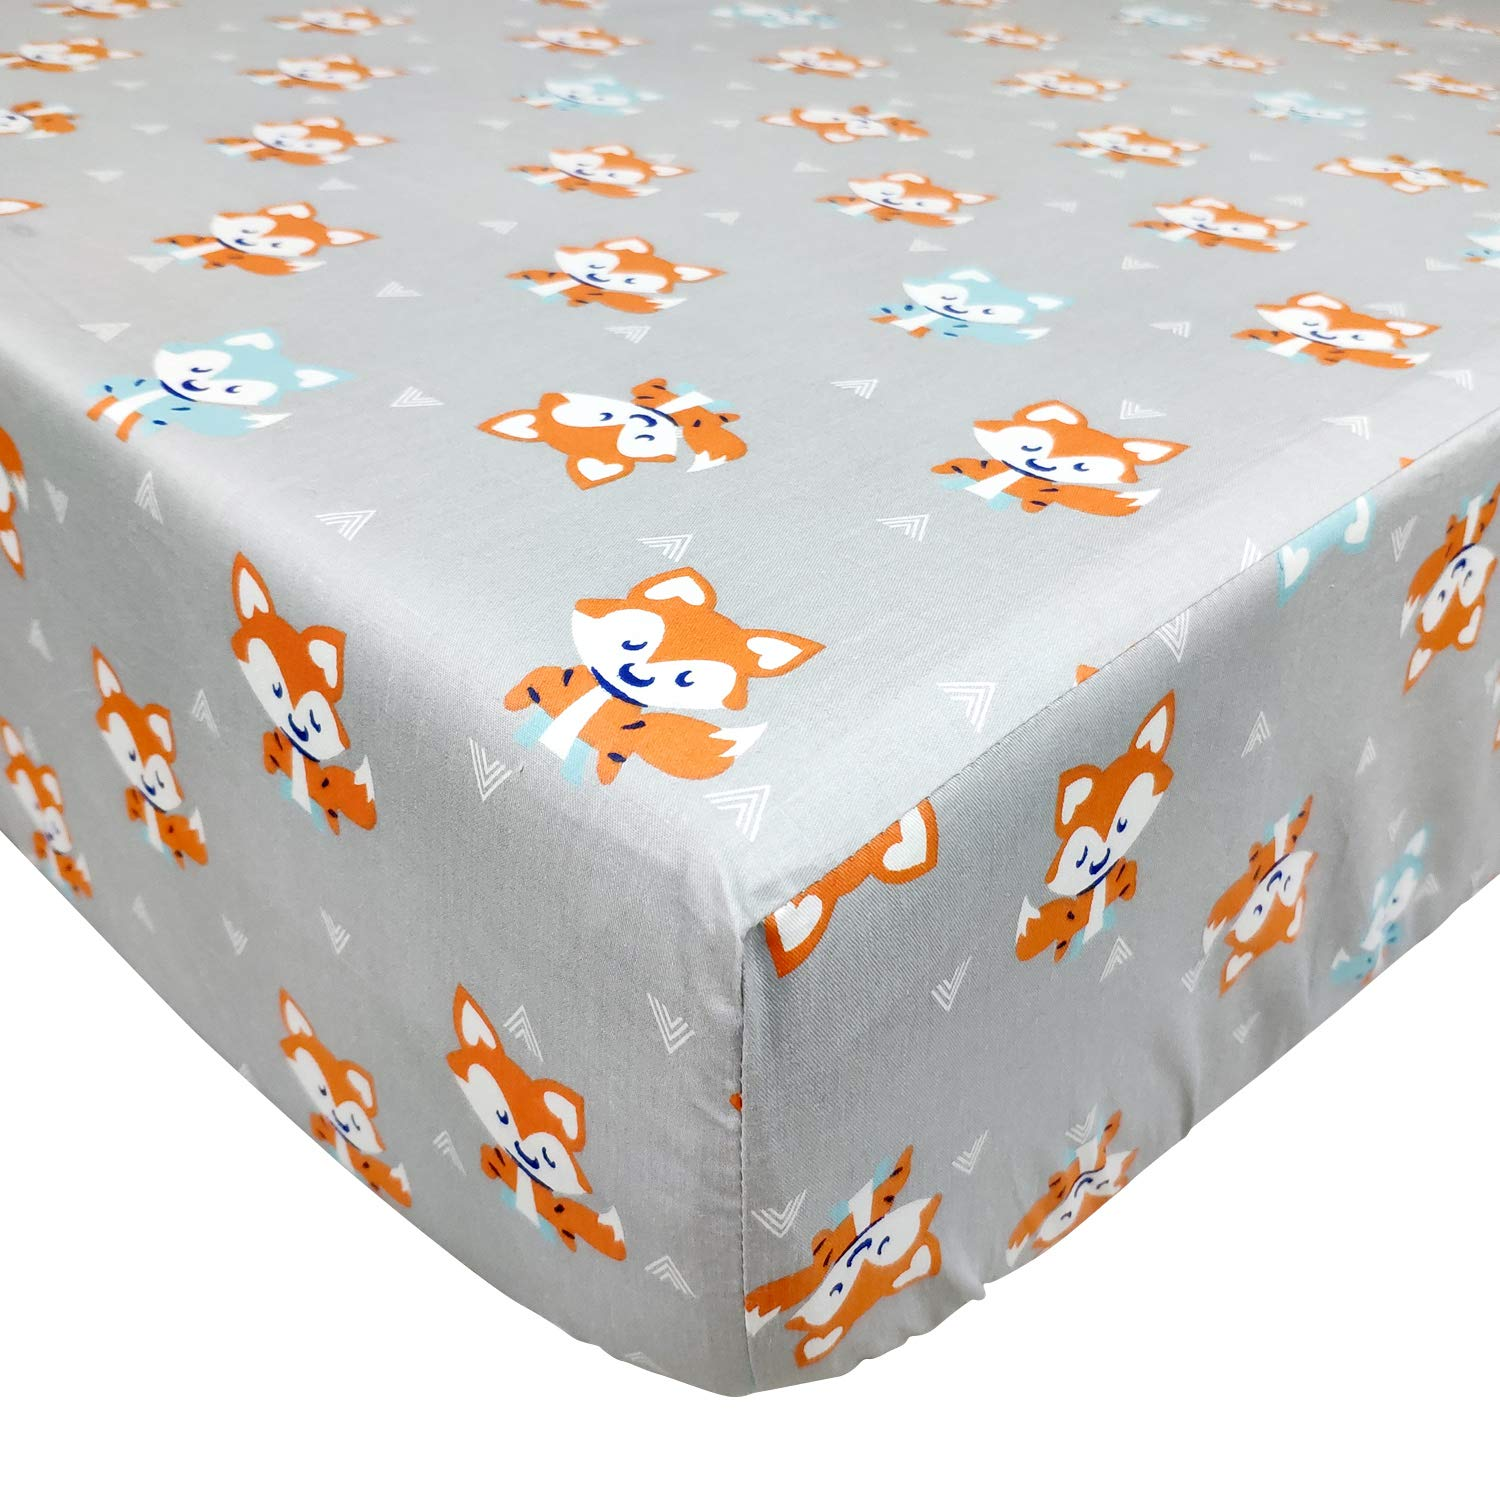 One Crib Sheet Brandream Woodland Crib Bedding Sets for Boys with Bumpers, Fox Arrow Baby Girl Nursery Bedding,Unisex,11 Pieces, 100% Hypoallergenic Cotton